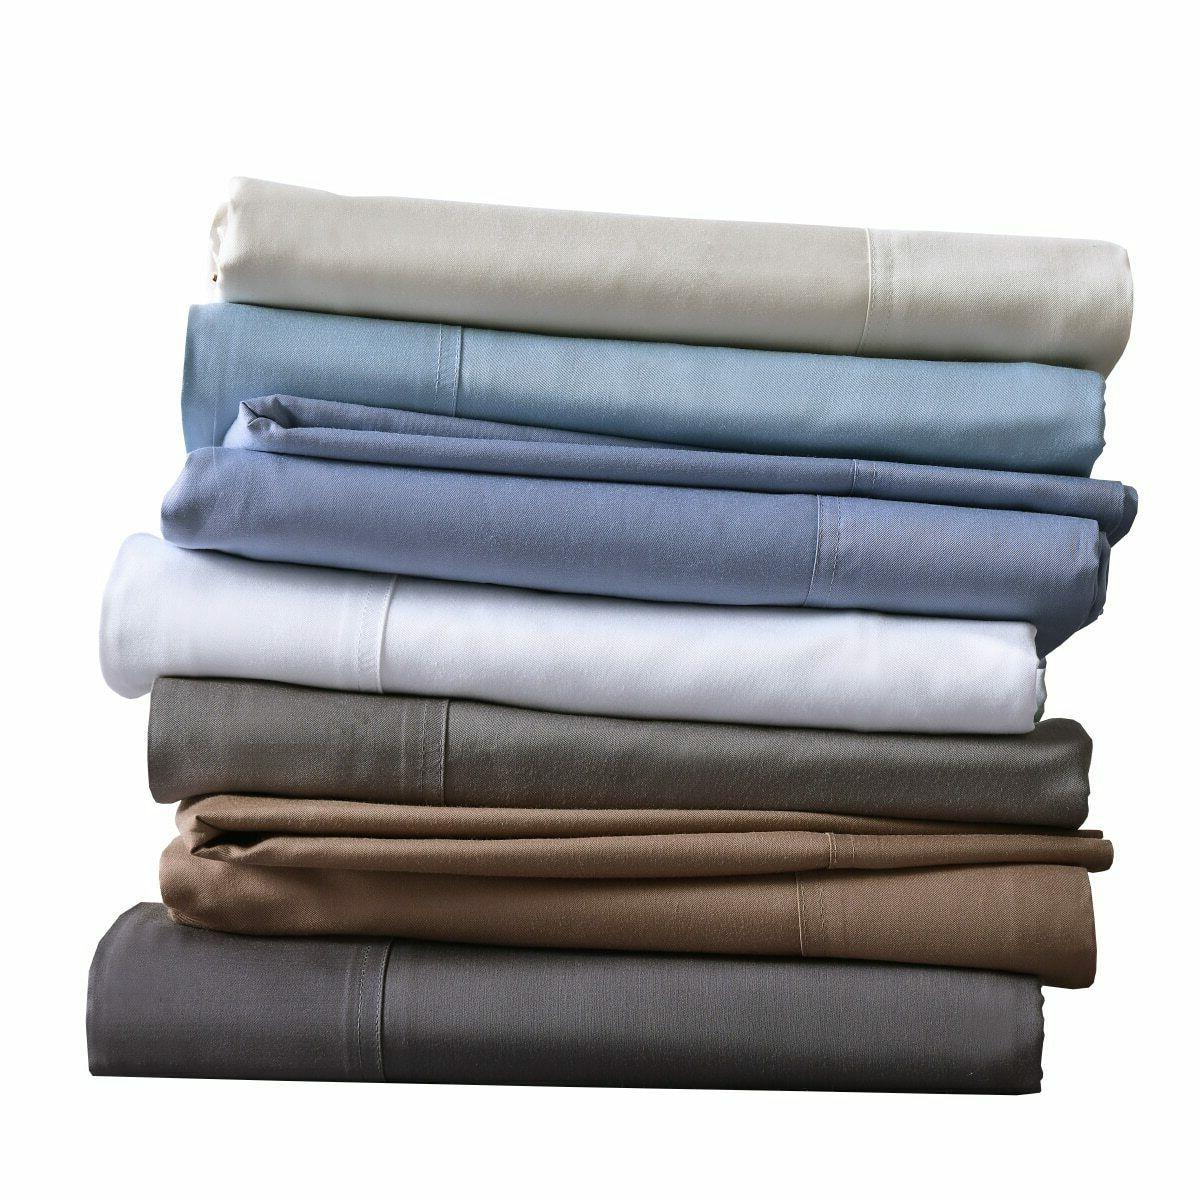 Silky Soft 100% Bamboo Cotton Pillow Cases, King Hybrid Bamb